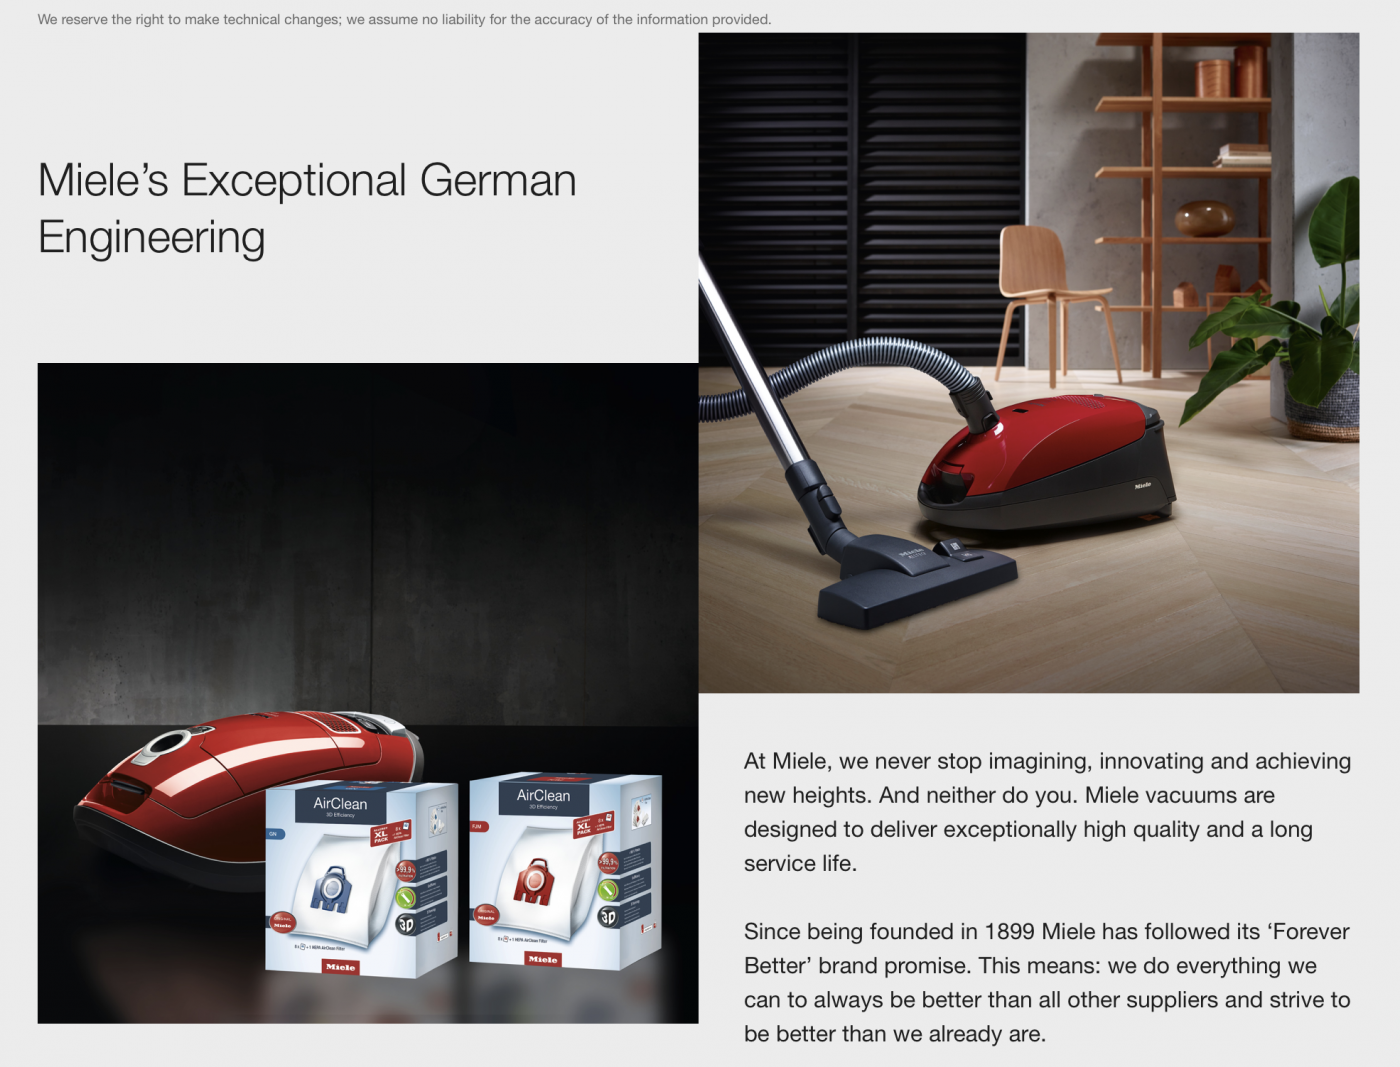 Miele's Exceptional German Engineering